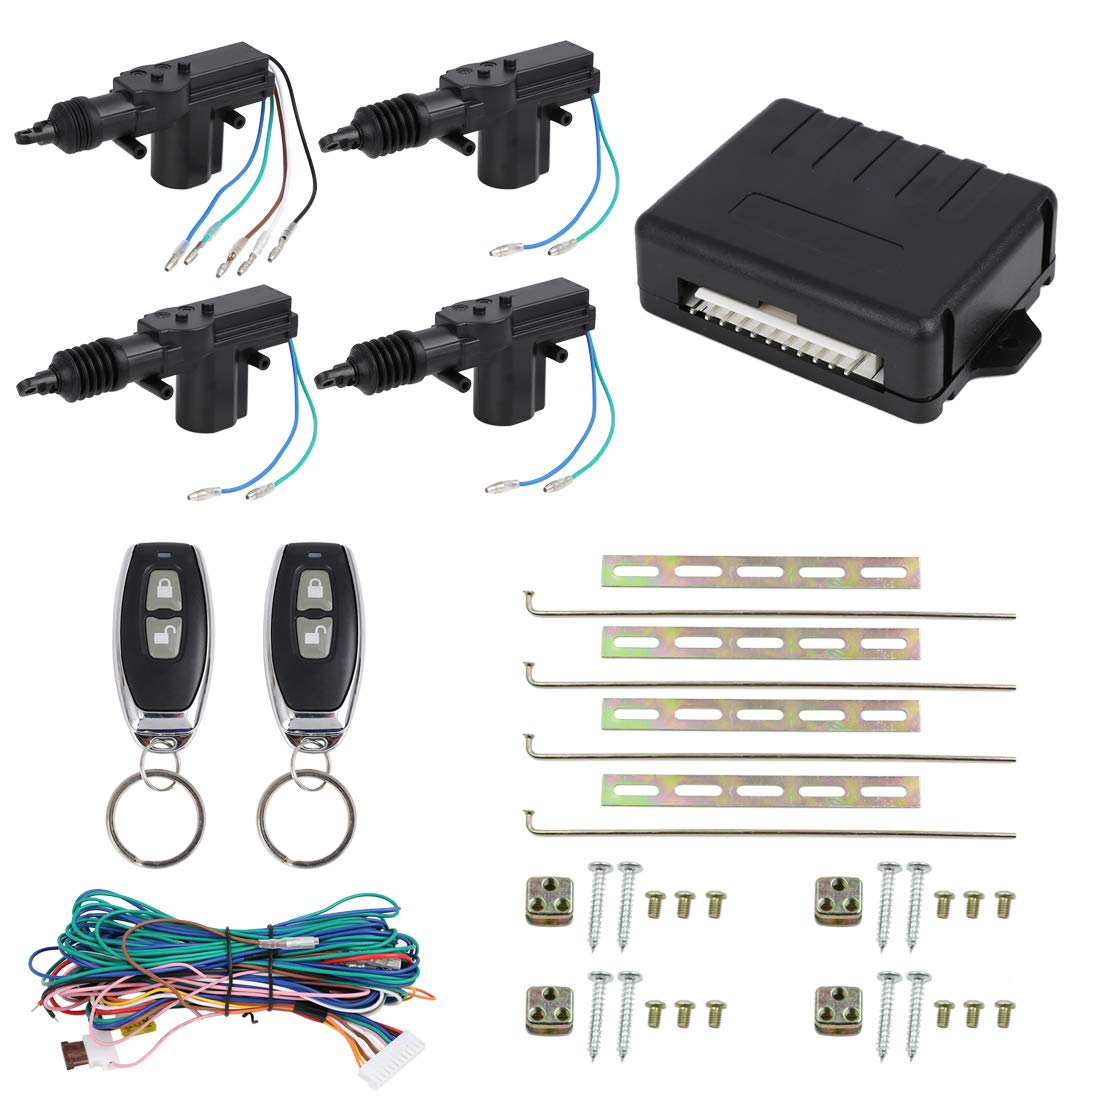 X AUTOHAUX 4 Doors Central Lock Locking System Car Keyless Entry Kit with Actuator by X AUTOHAUX